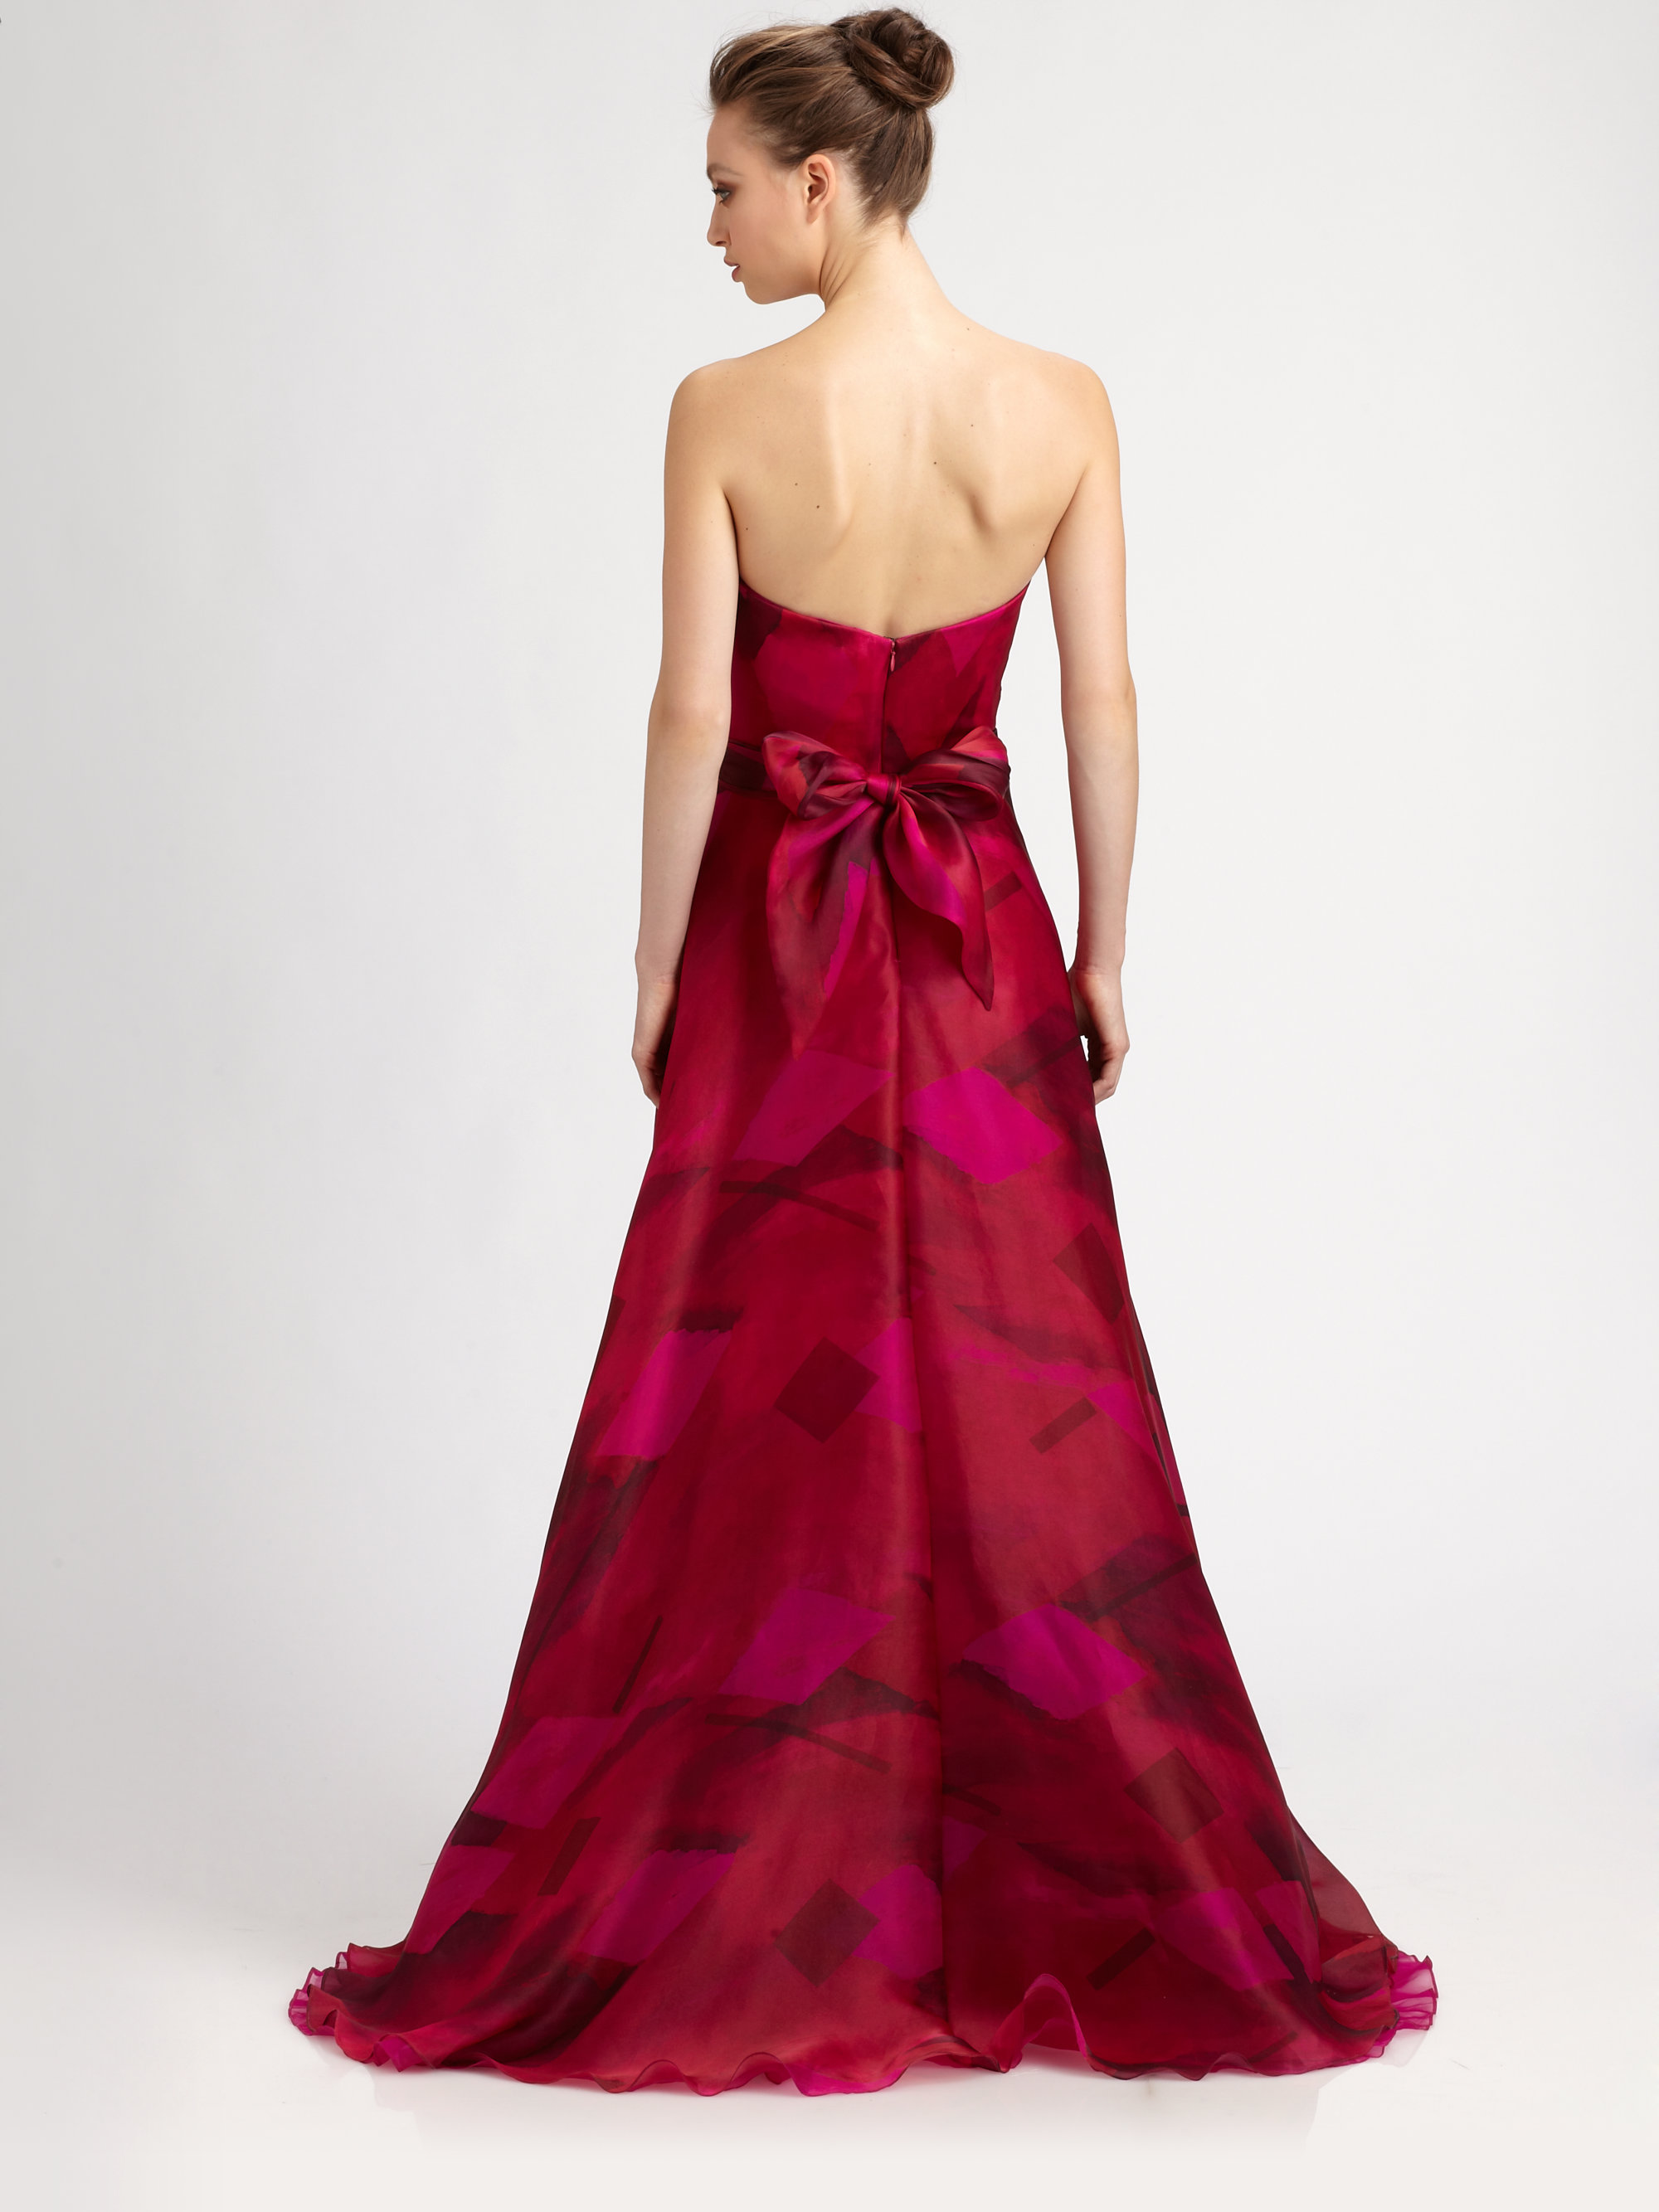 Lyst - Theia Strapless Silk Organza Ball Gown in Red